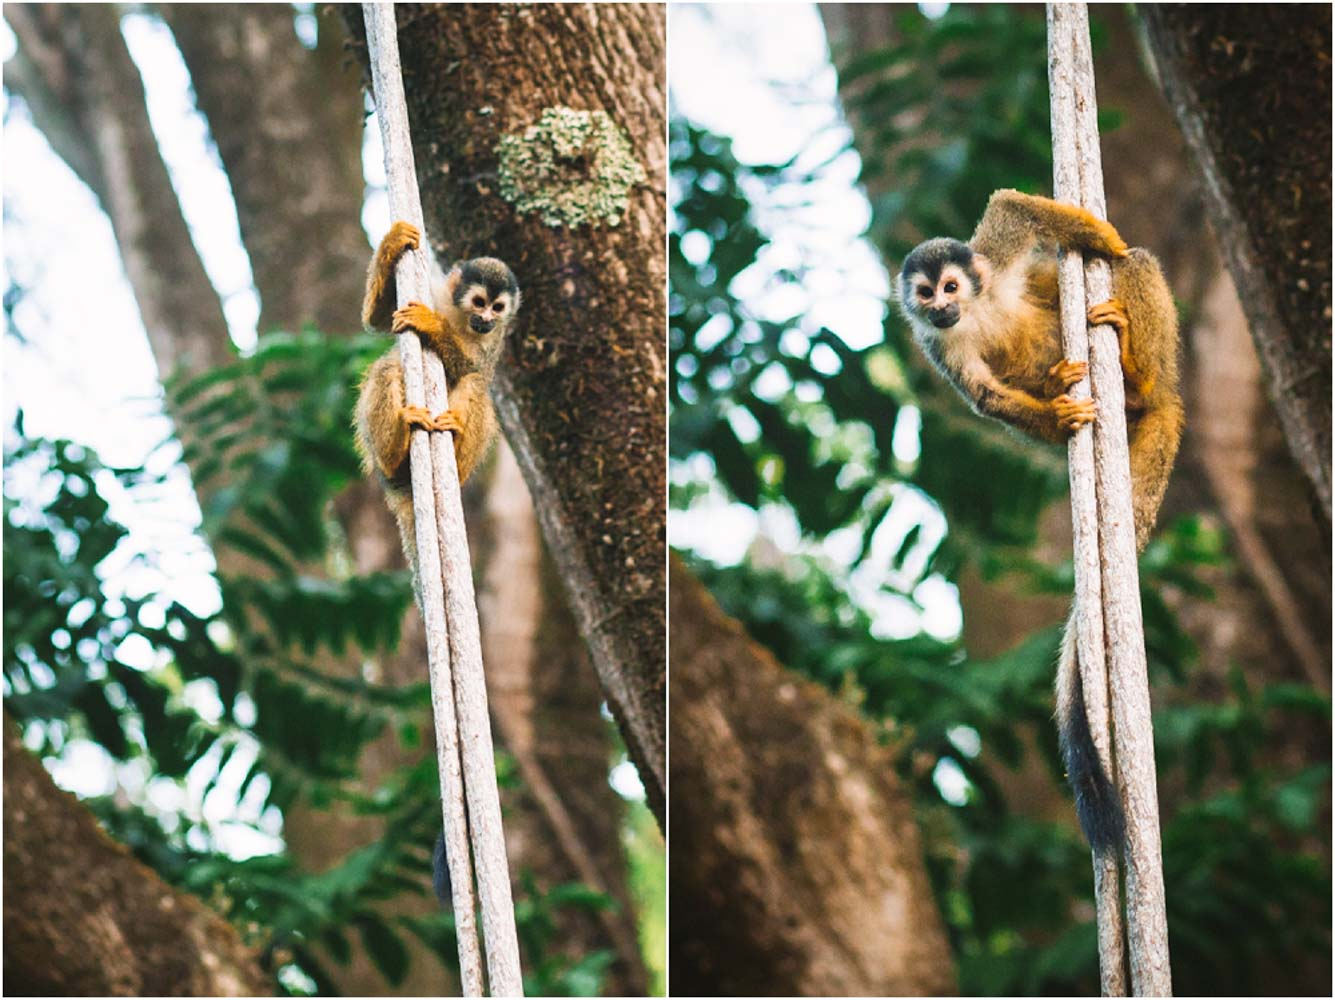 Titi Monkeys in Manuel Antonio Costa Rica